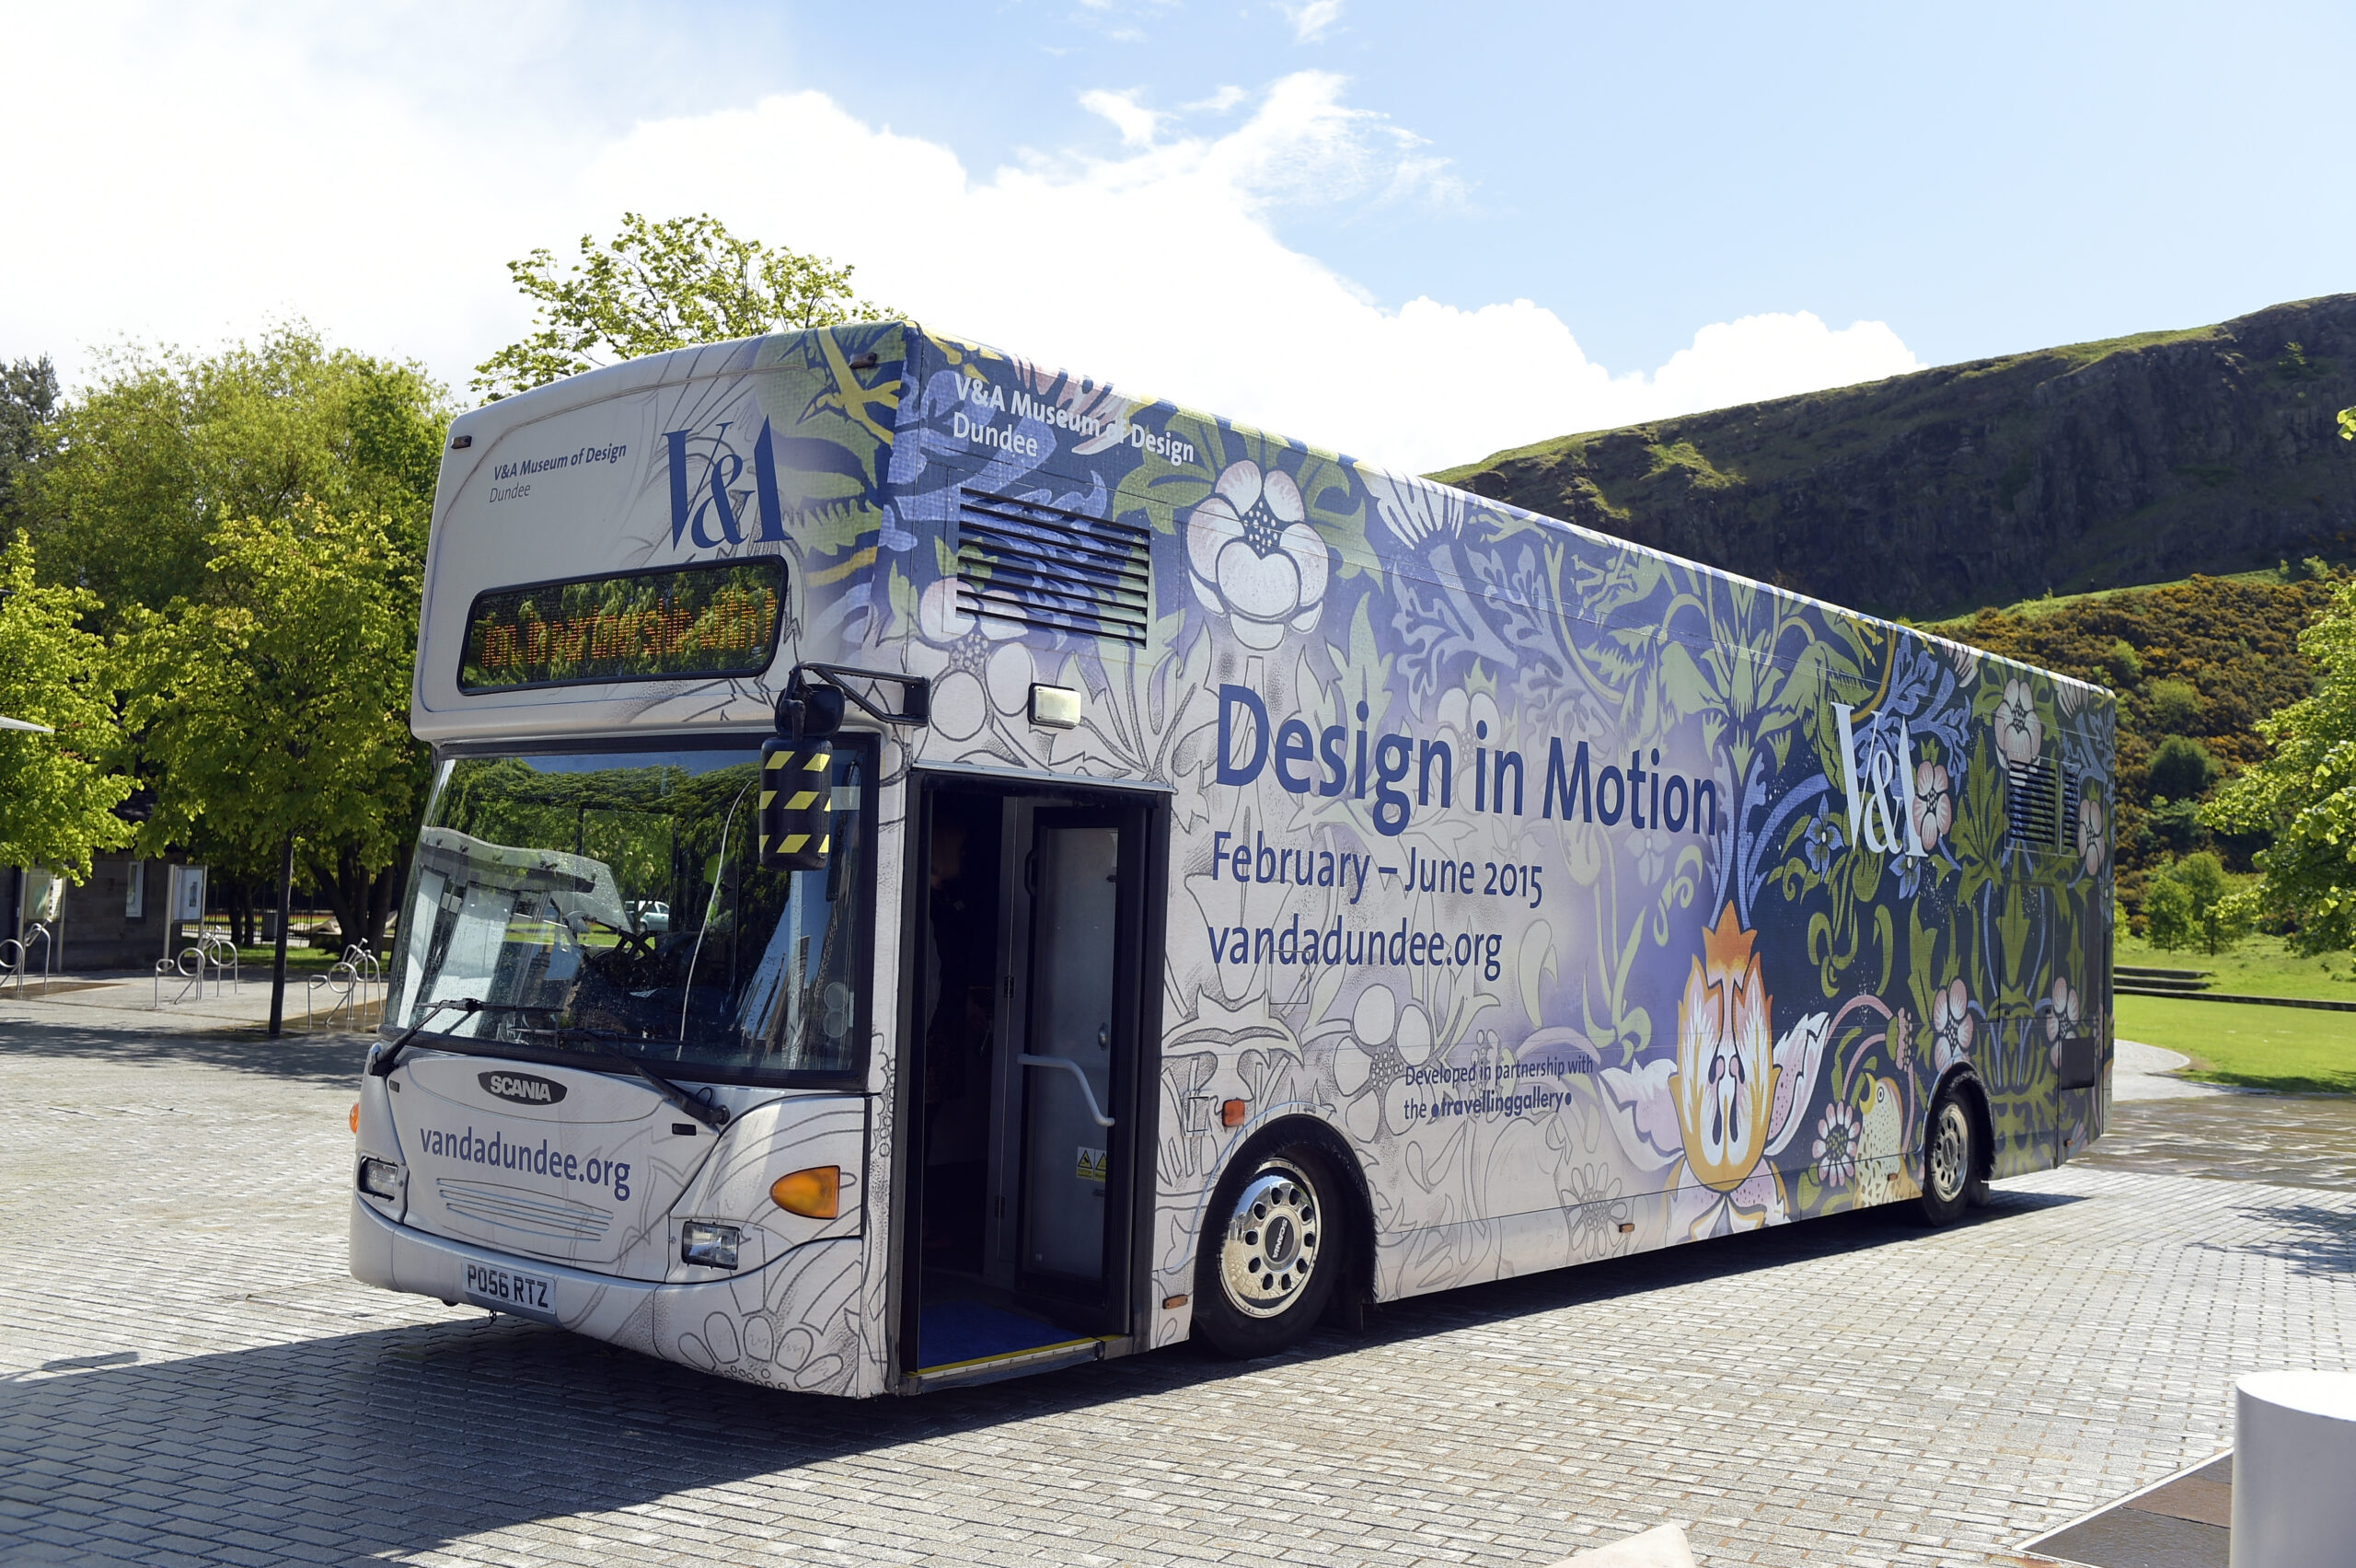 V&A Dundee Design in Motion